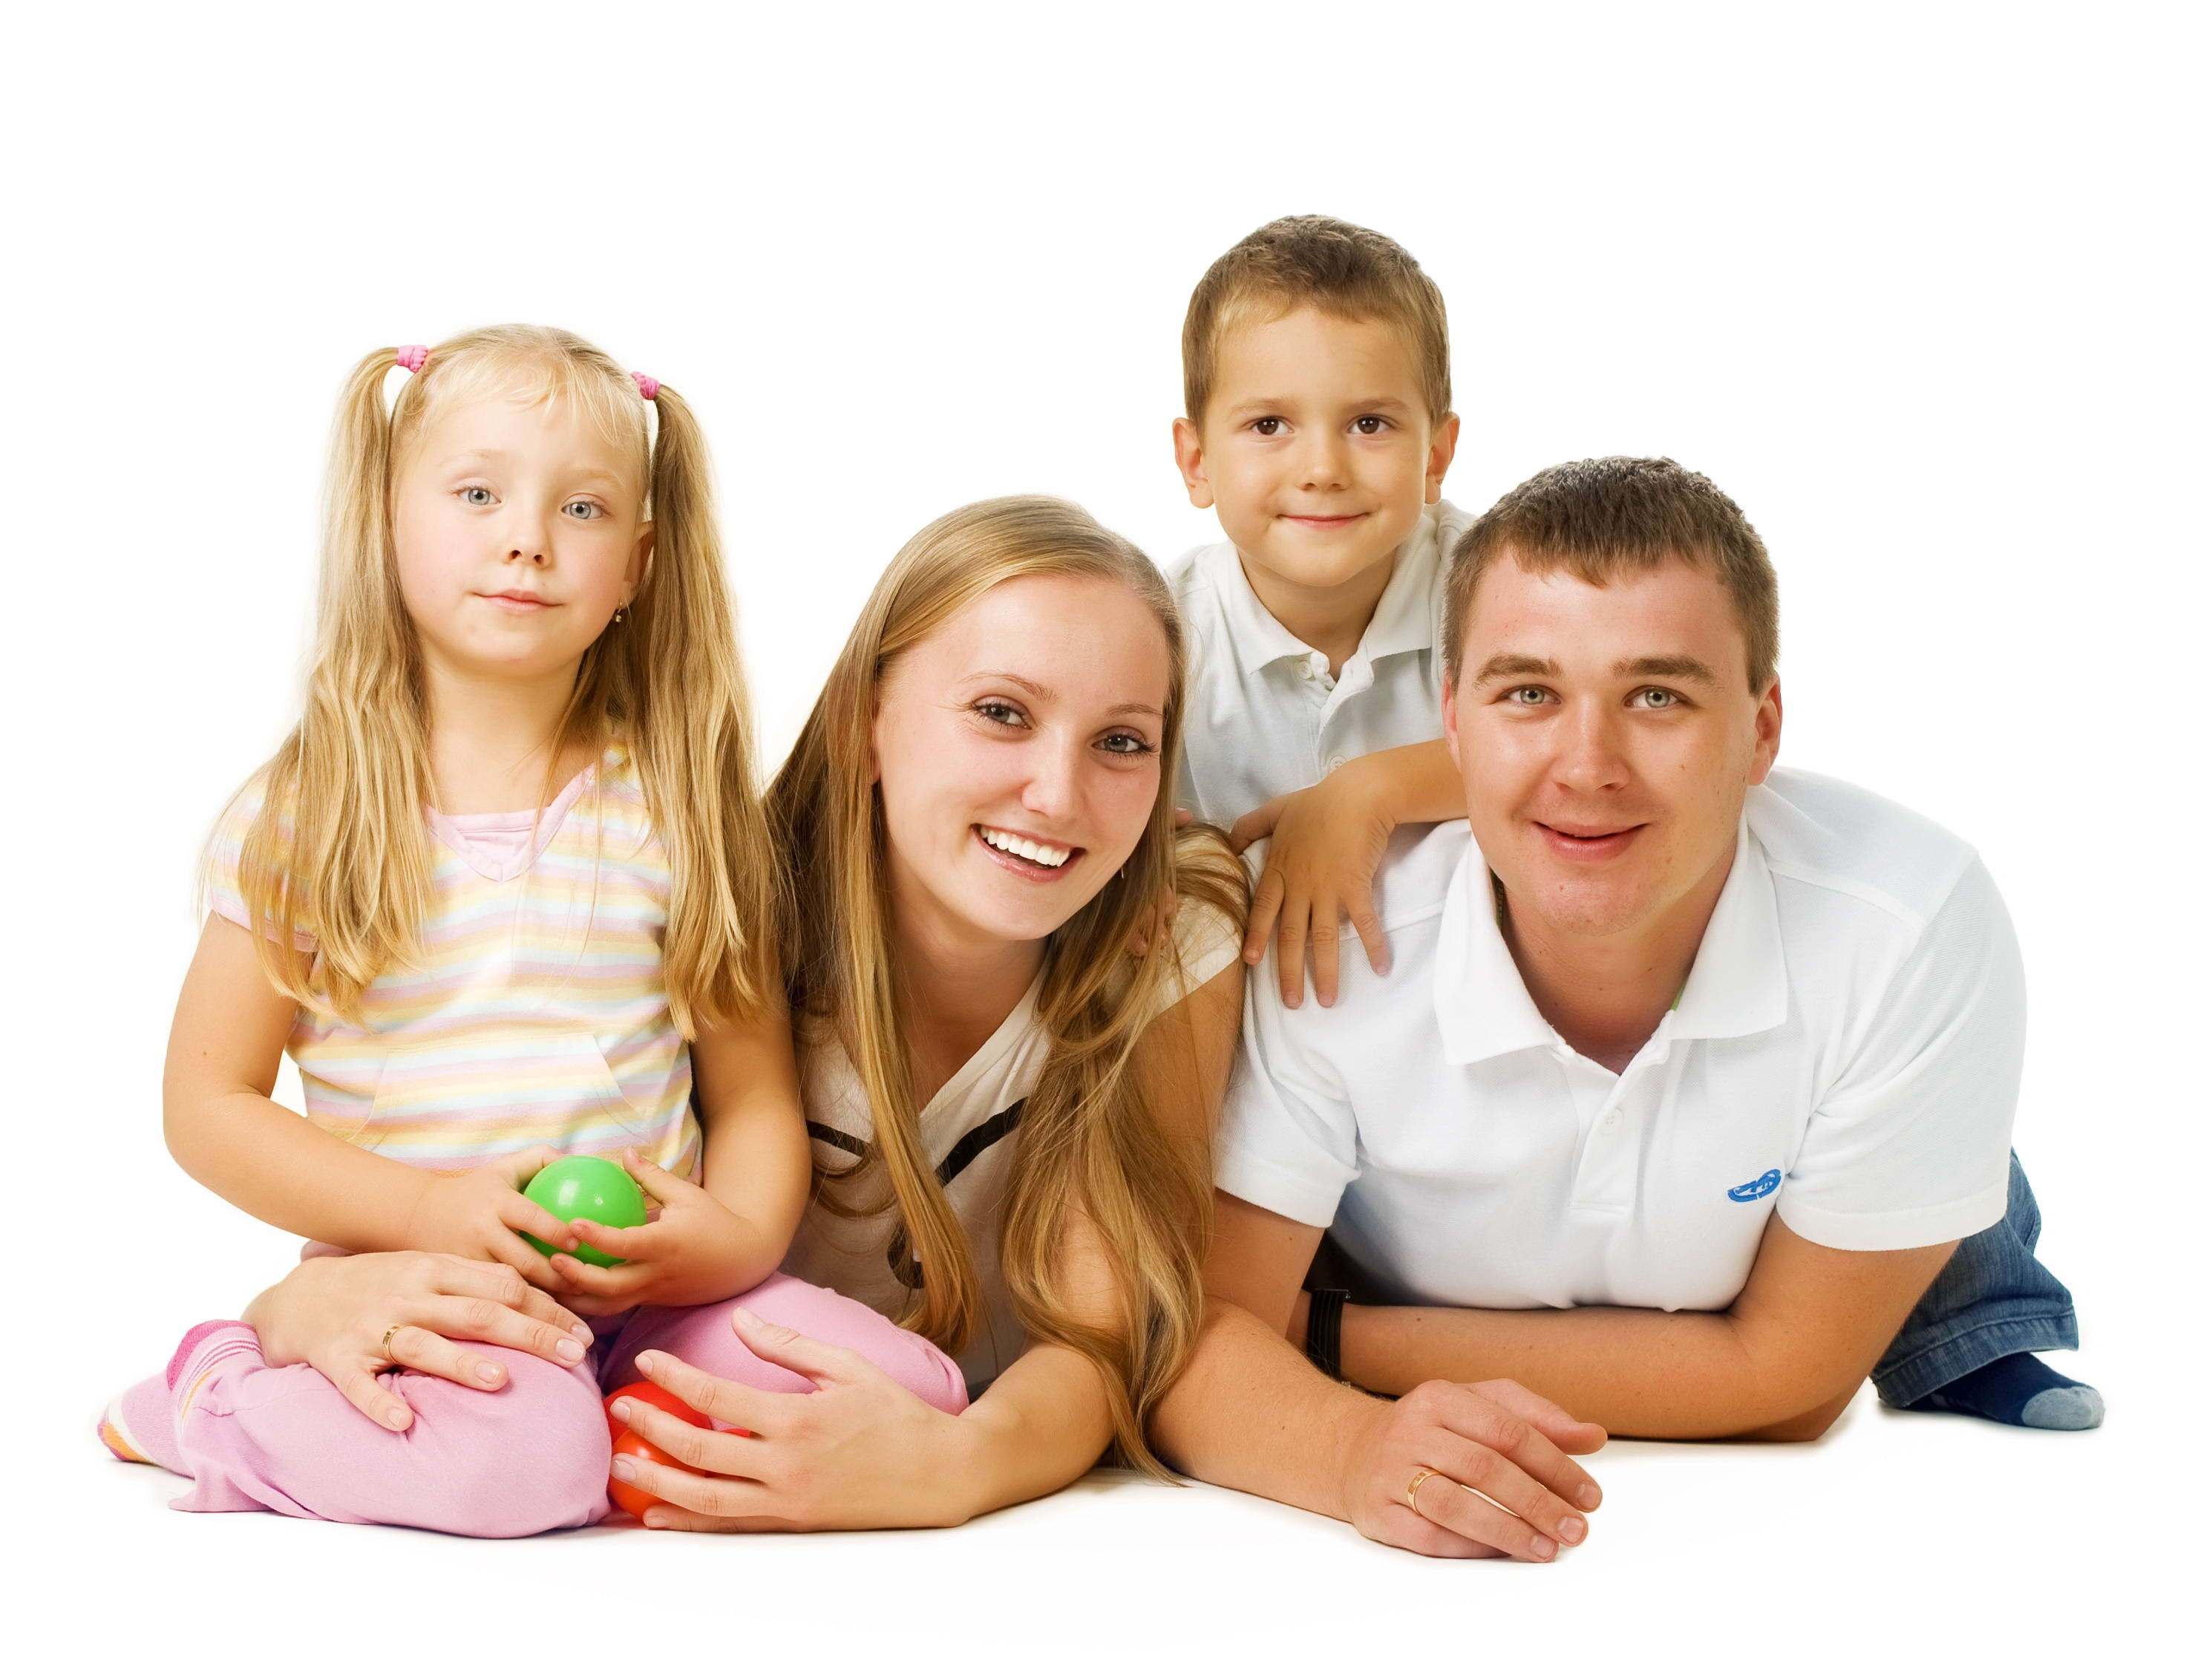 of happy family hd images photography Royalty photography 3219 2980x2248